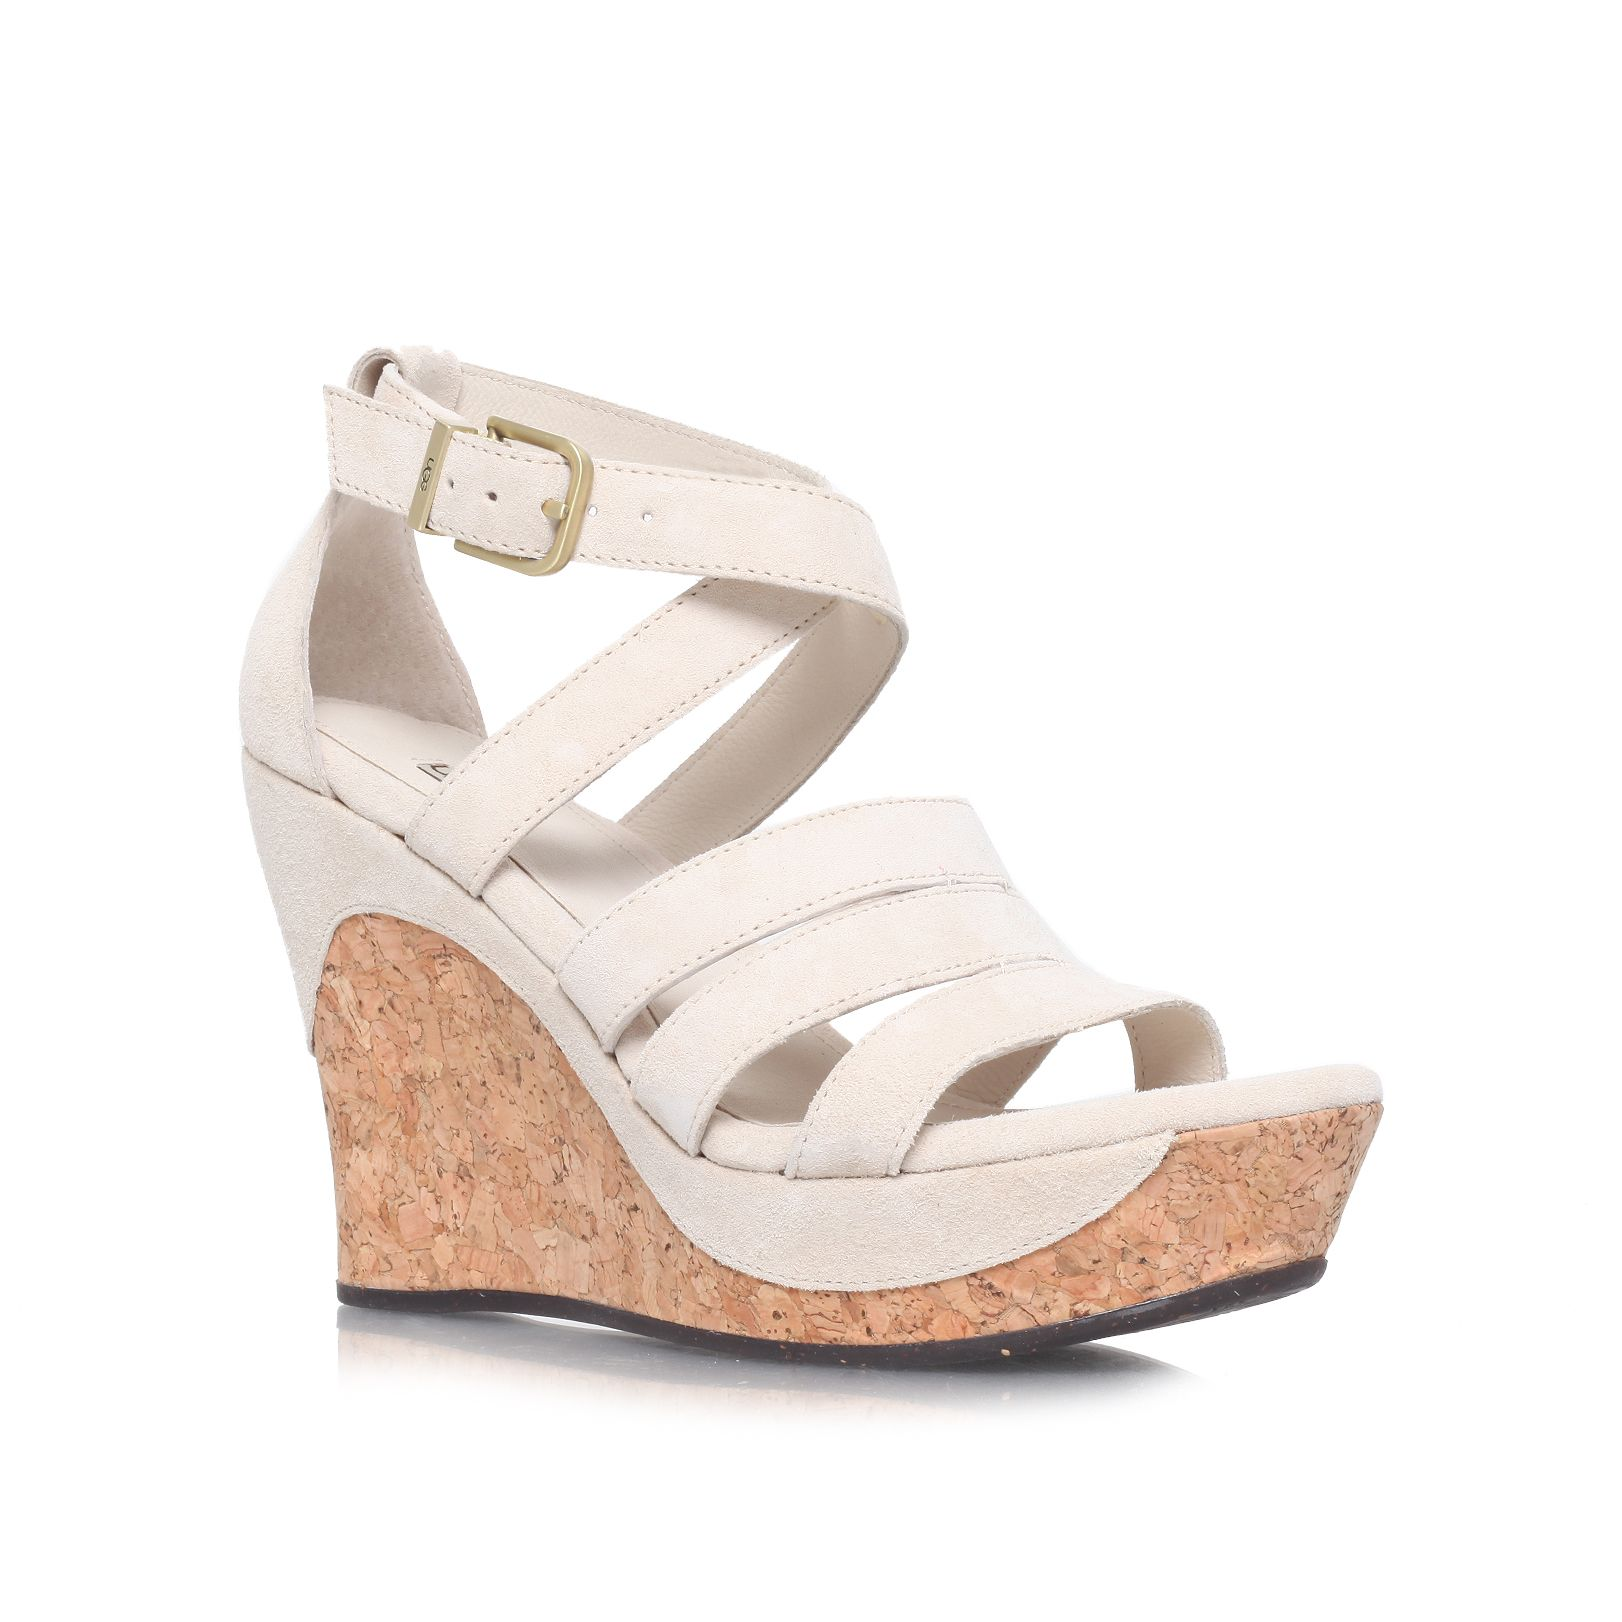 Dillion high heeled wedges